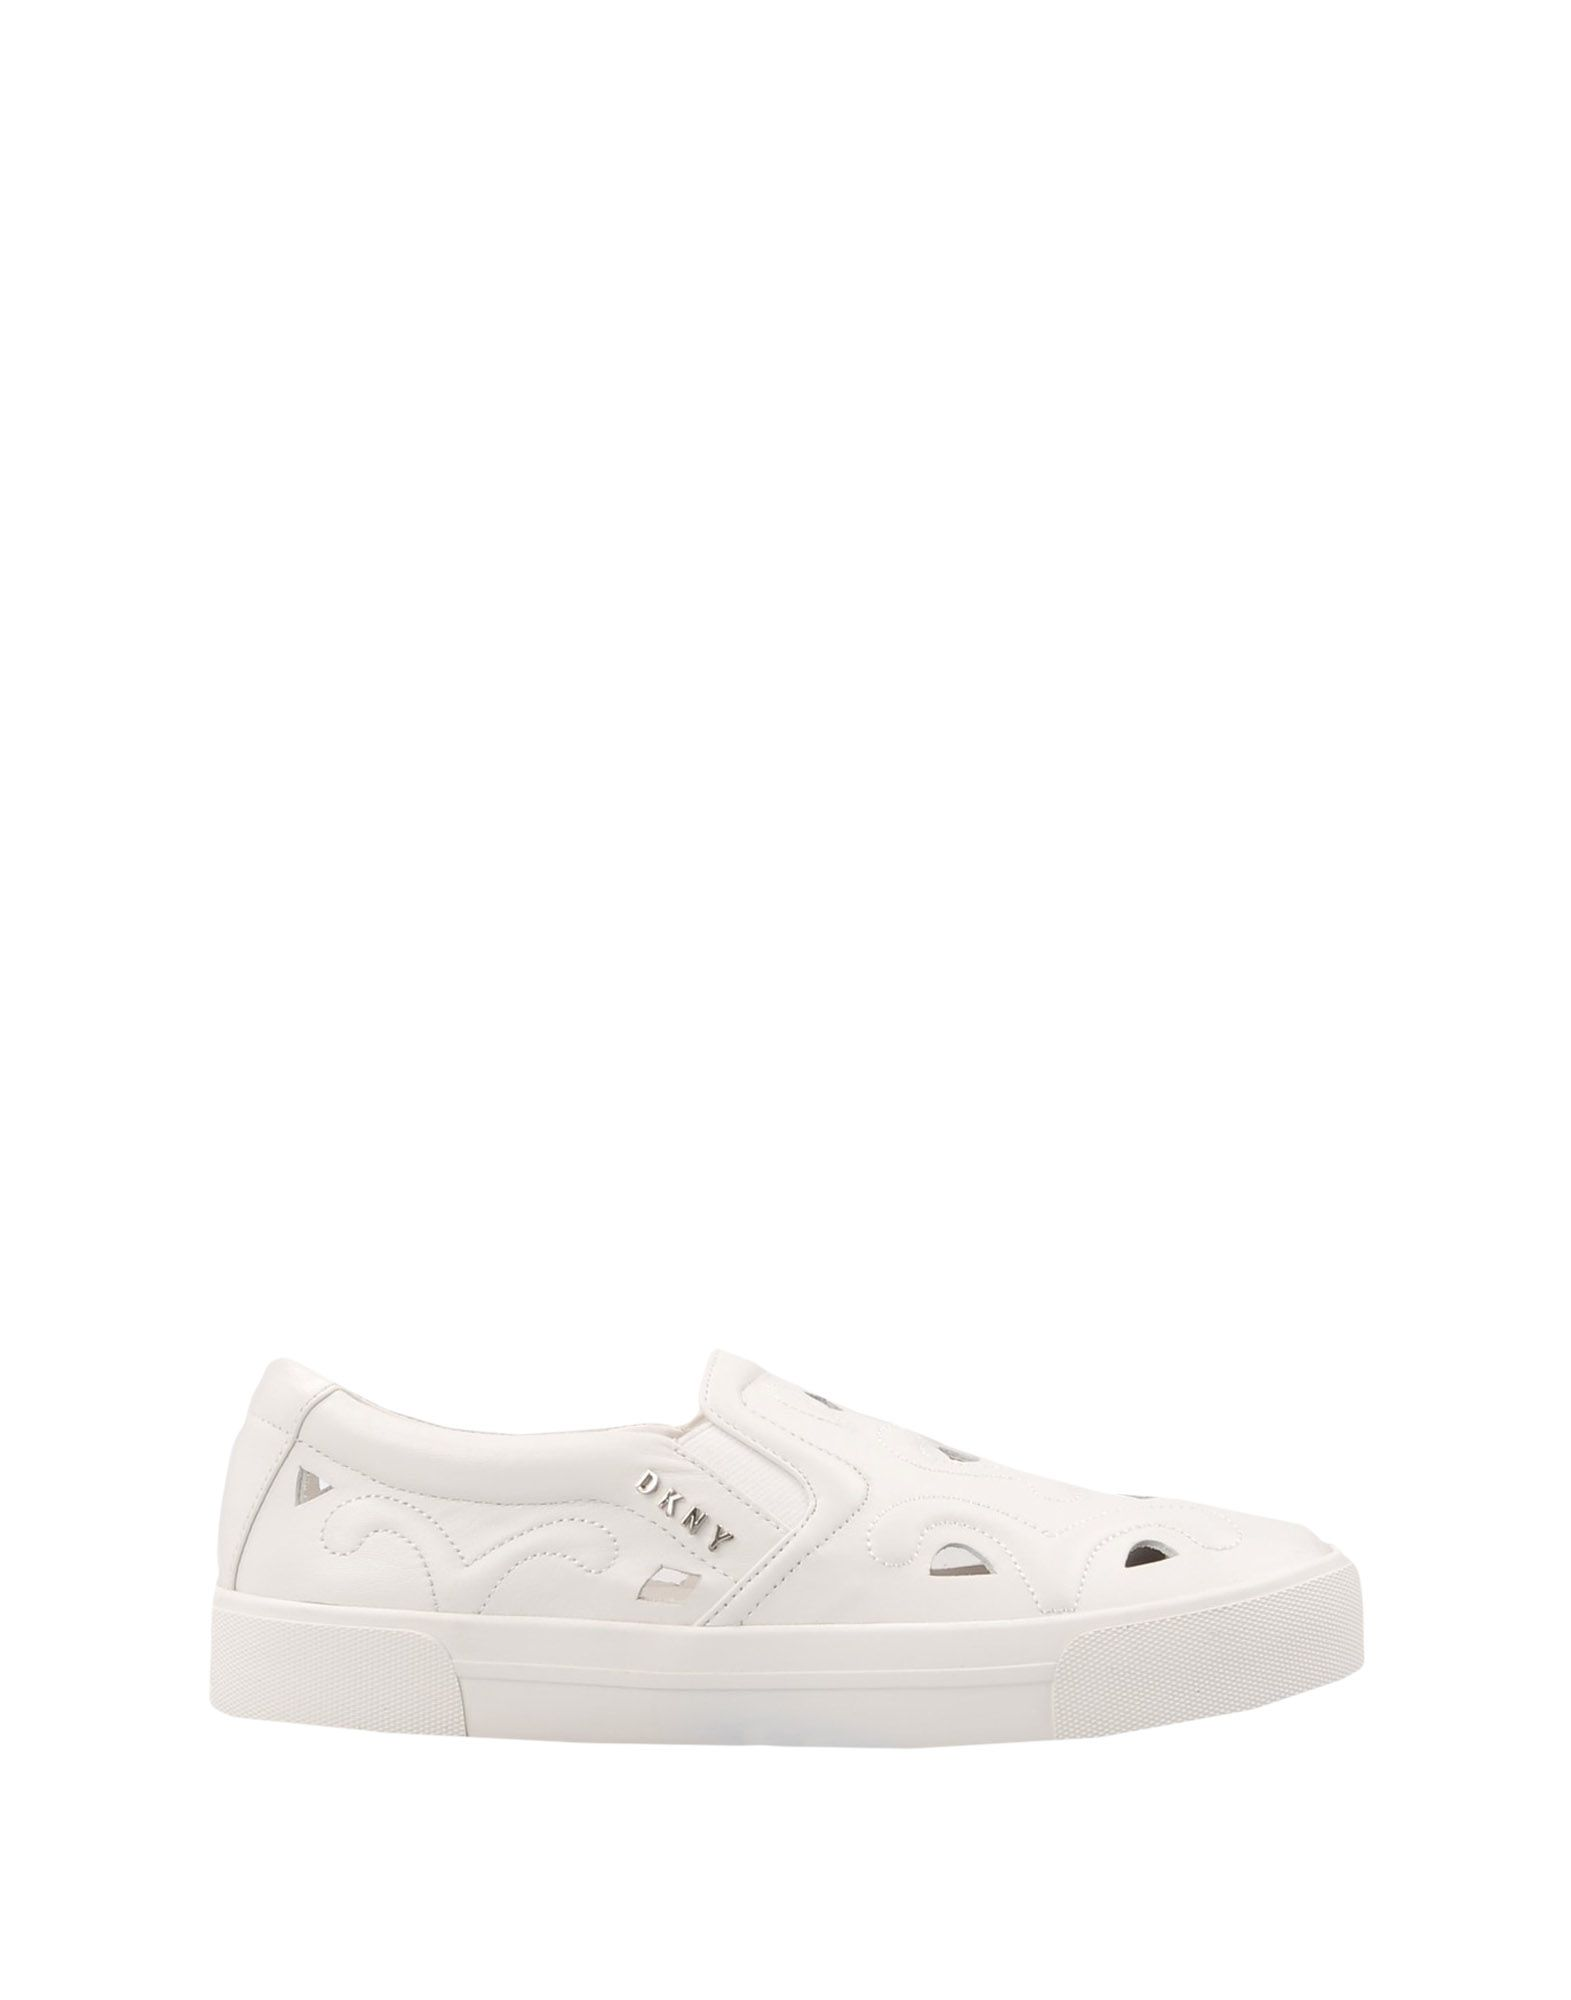 Sneakers Dkny Bess - Slip On Sneak - Donna - 11428564HE